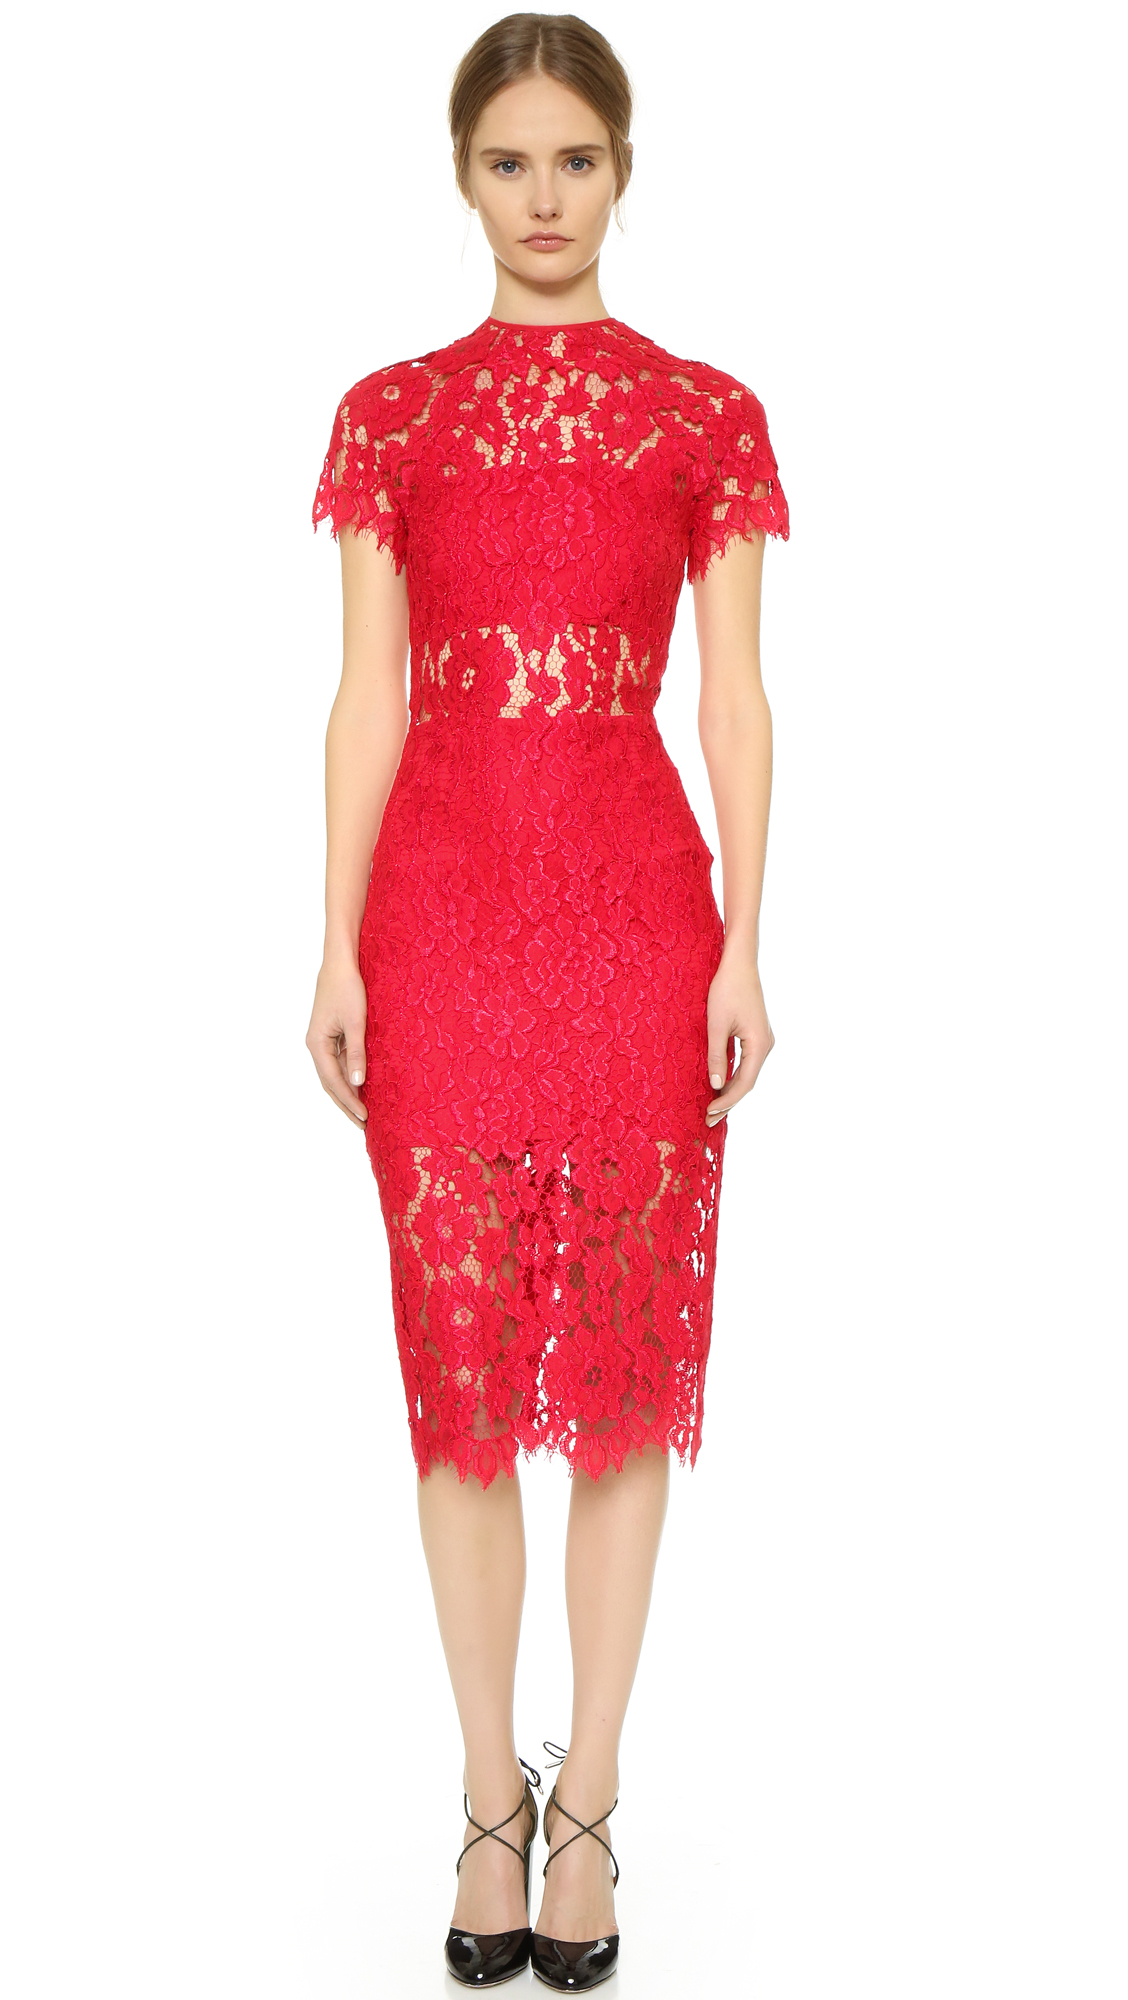 Alexis Leona Lace Dress - Red in Red - Lyst